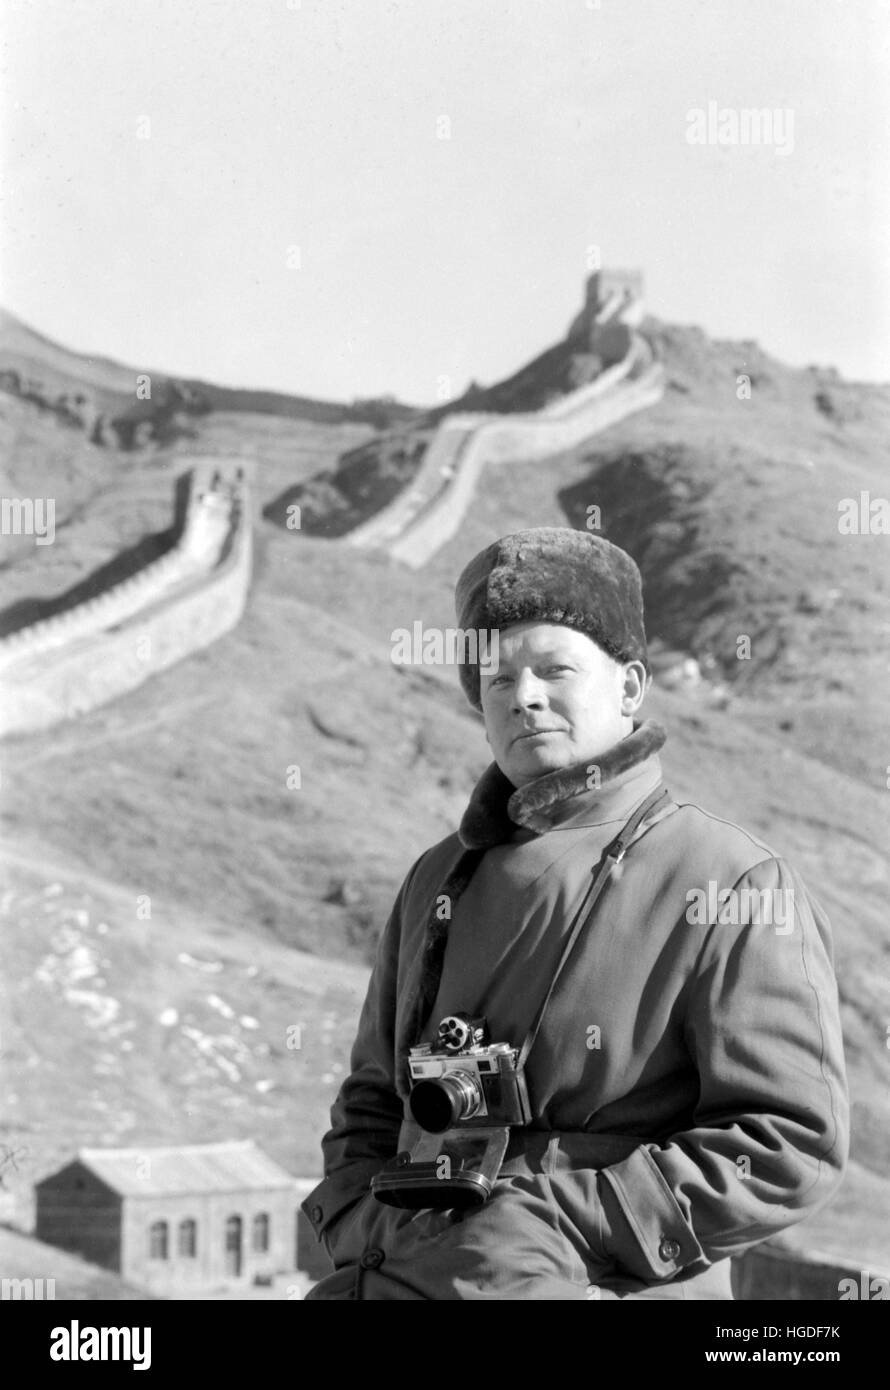 Edmund W. Stevens, on the Great Wall of China, 1957. - Stock Image